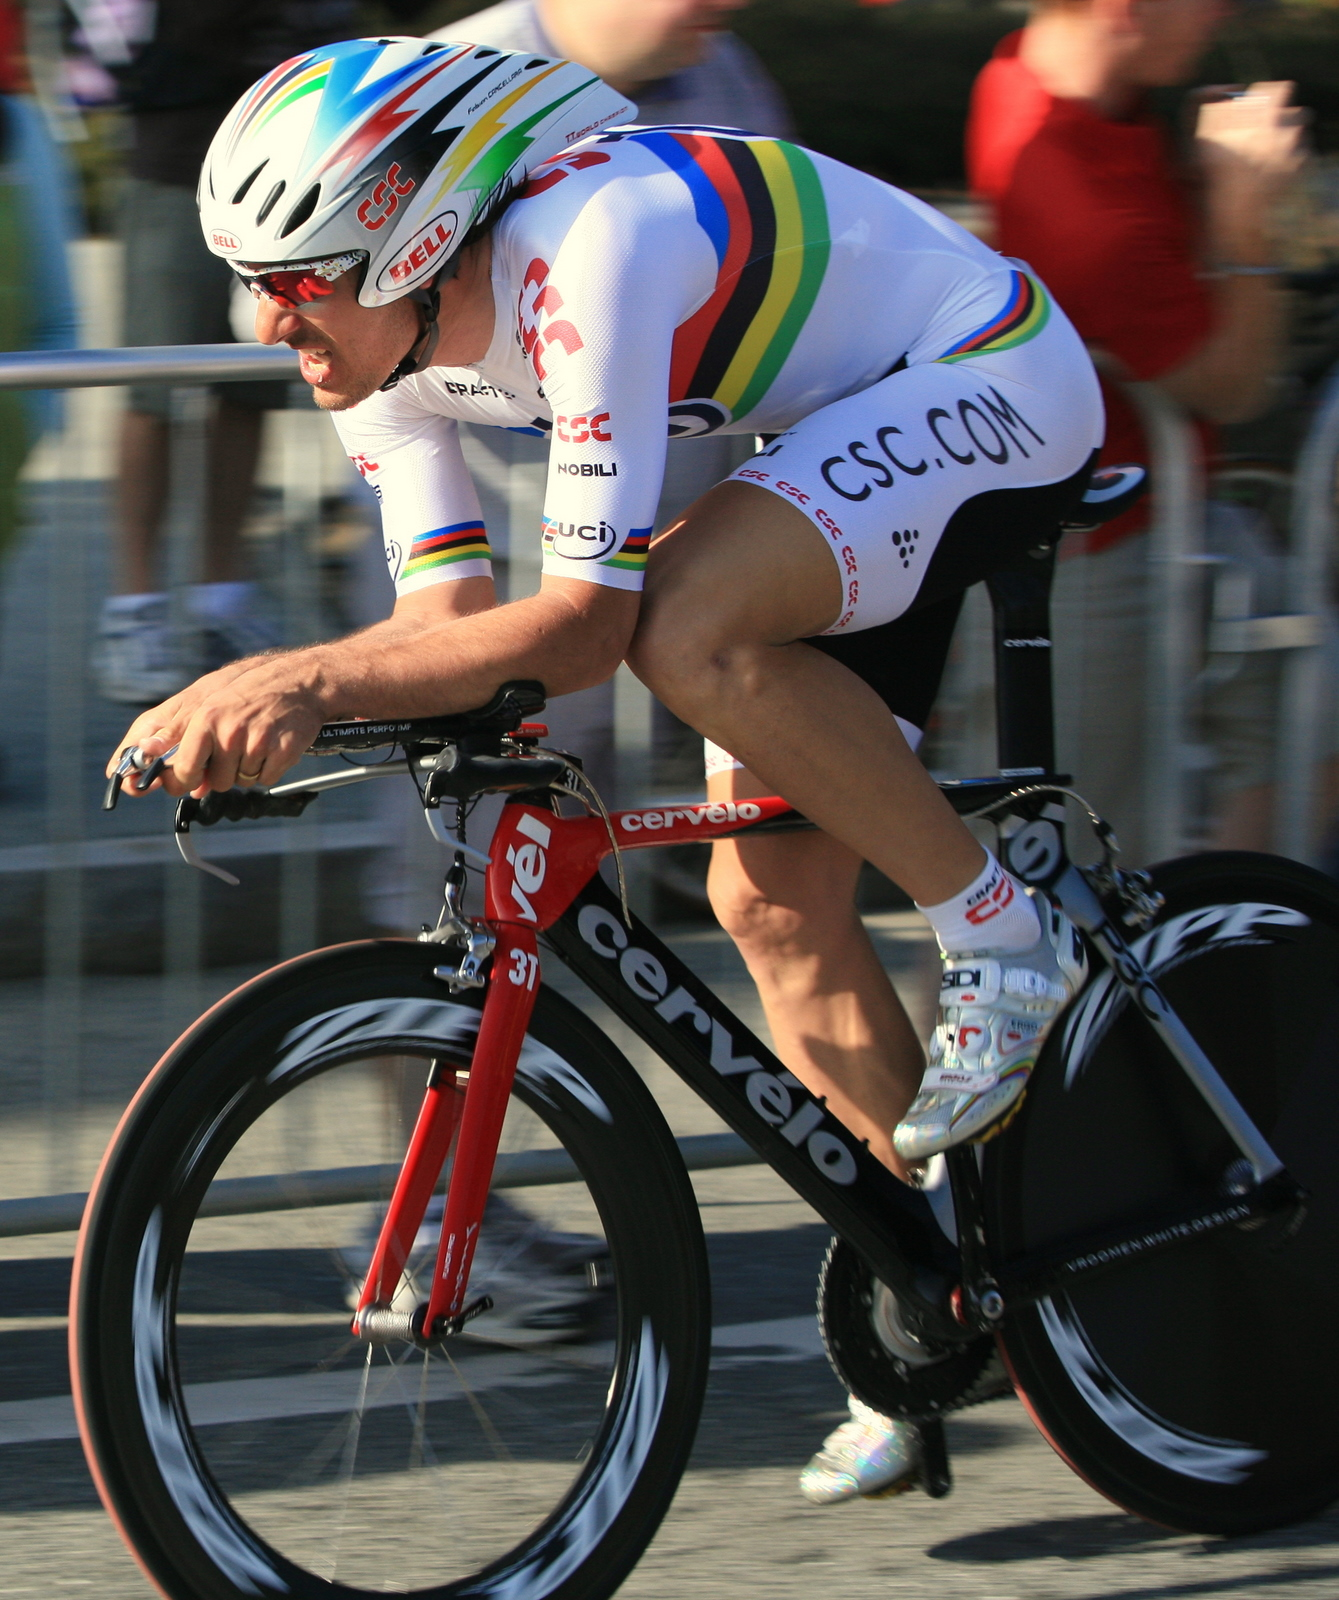 Fabien Cancellara on board a 3T equipped Cervelo at the 2008 Tour of California